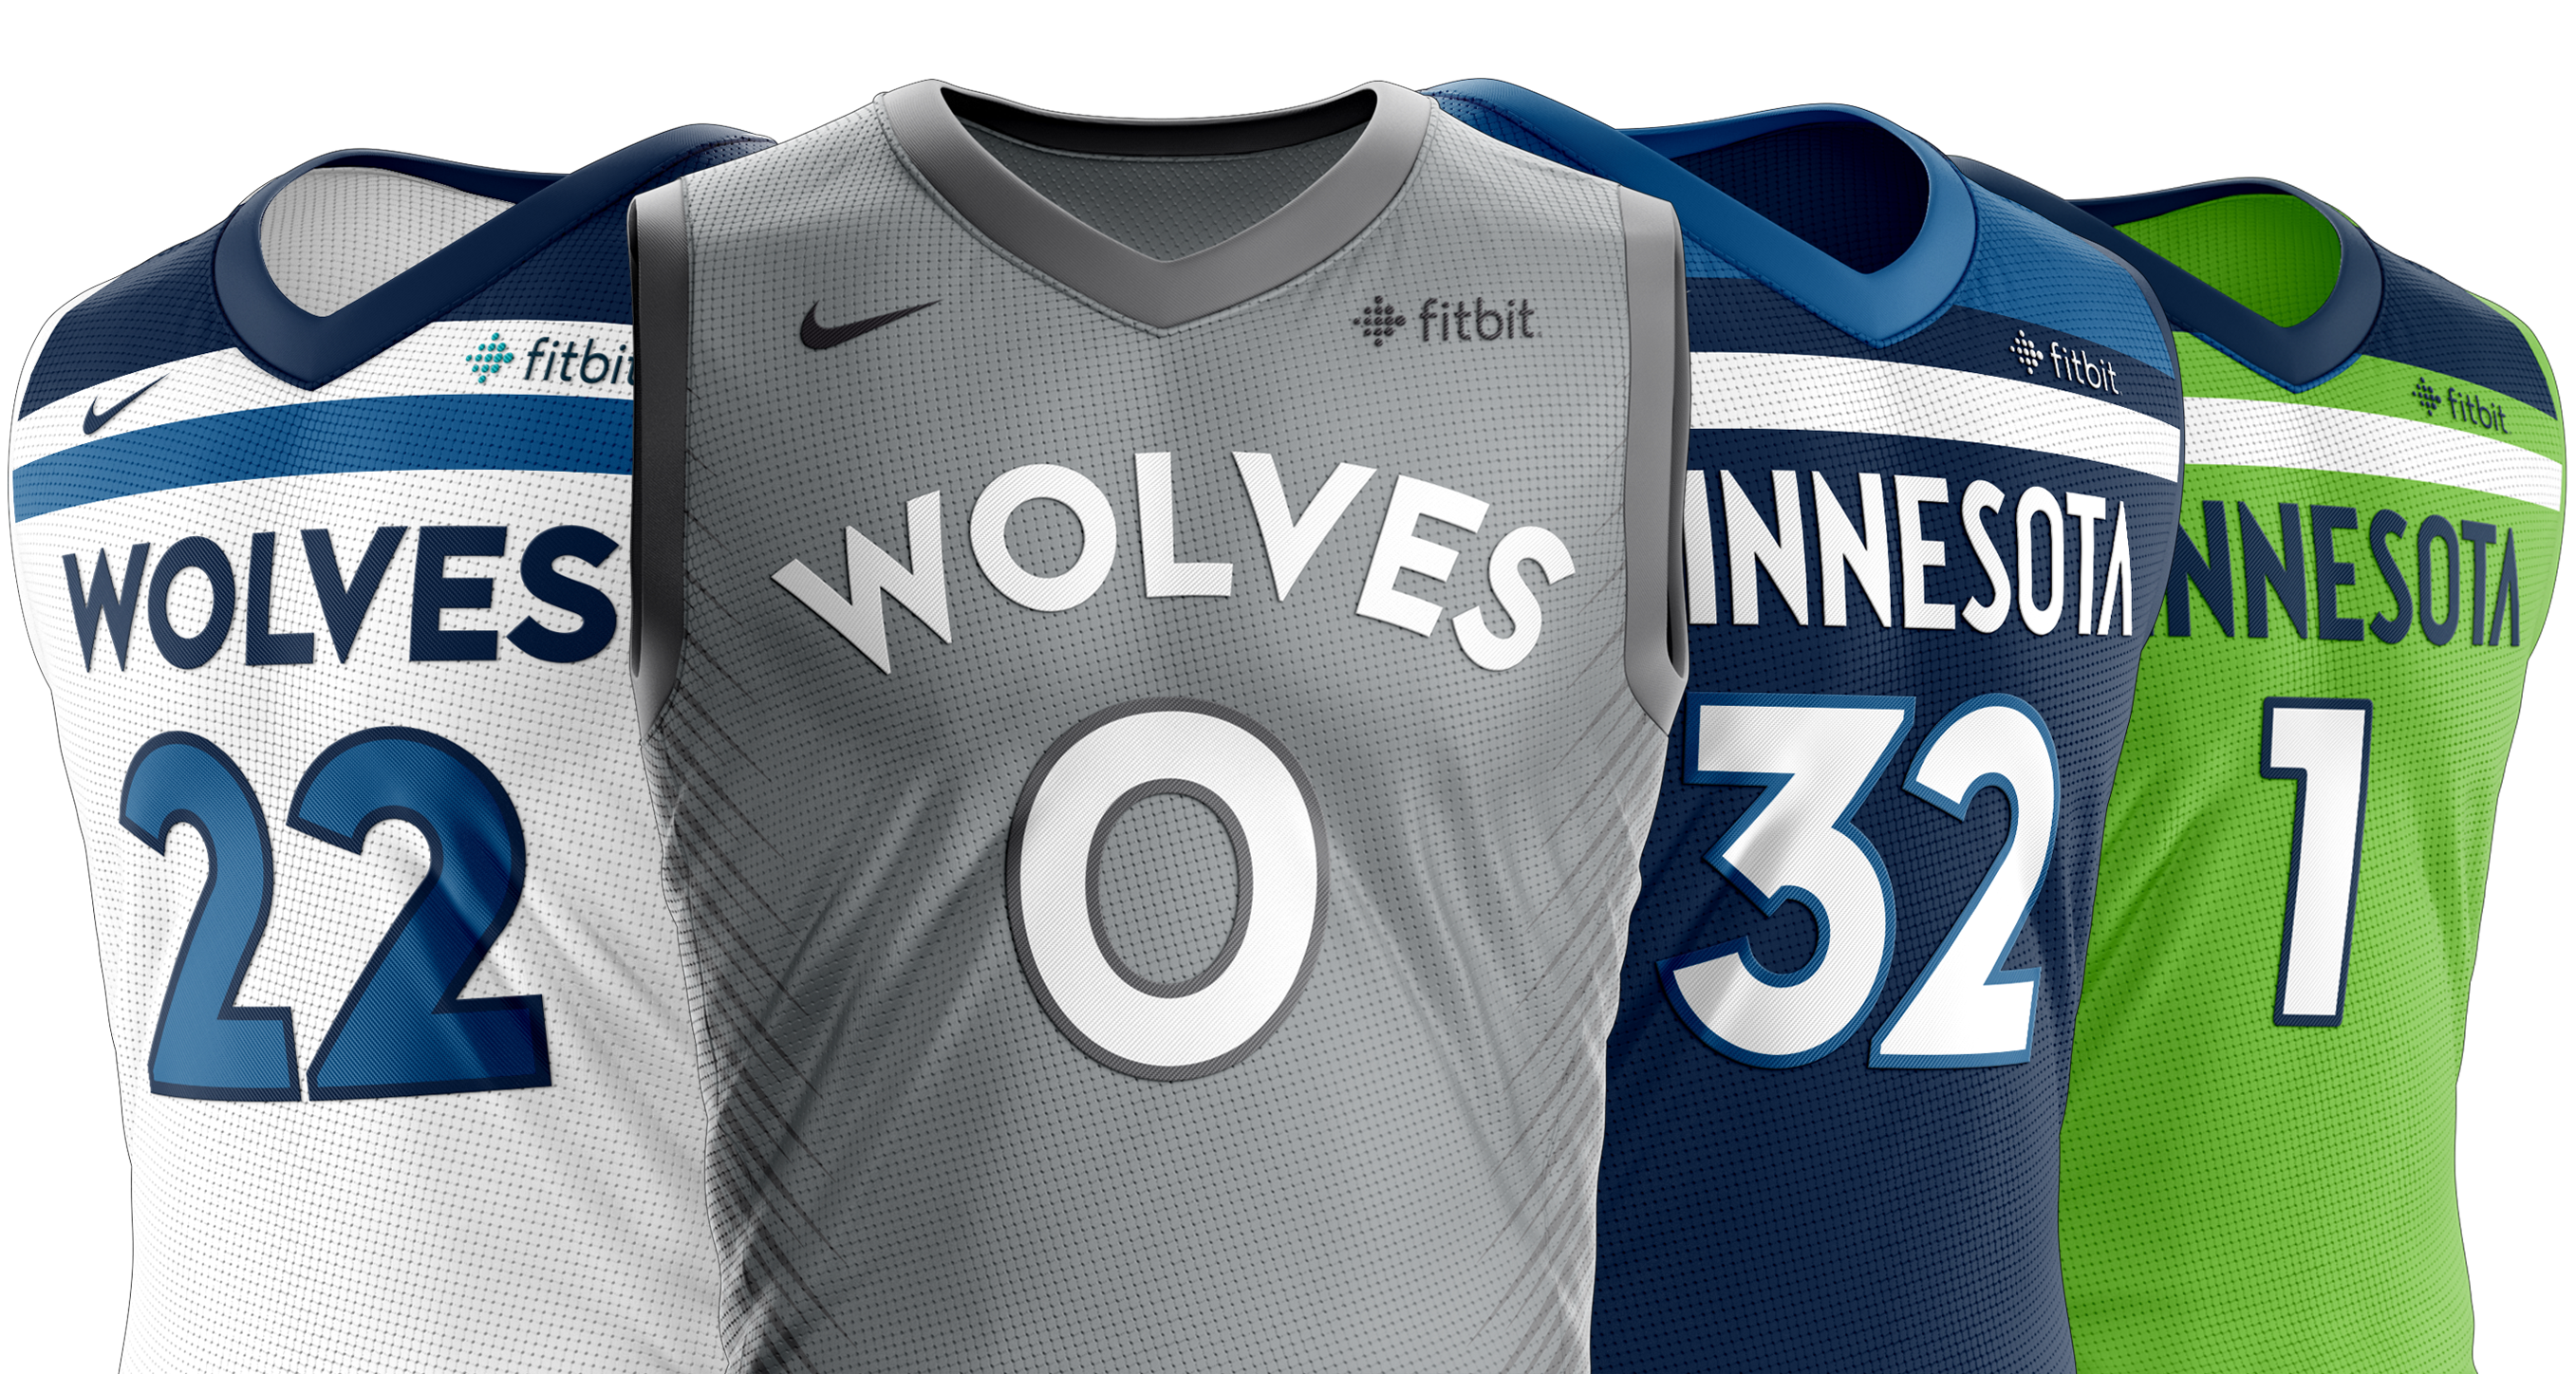 1d2b6bb65 Introducing the Timberwolves New Uniforms for 2017-18.